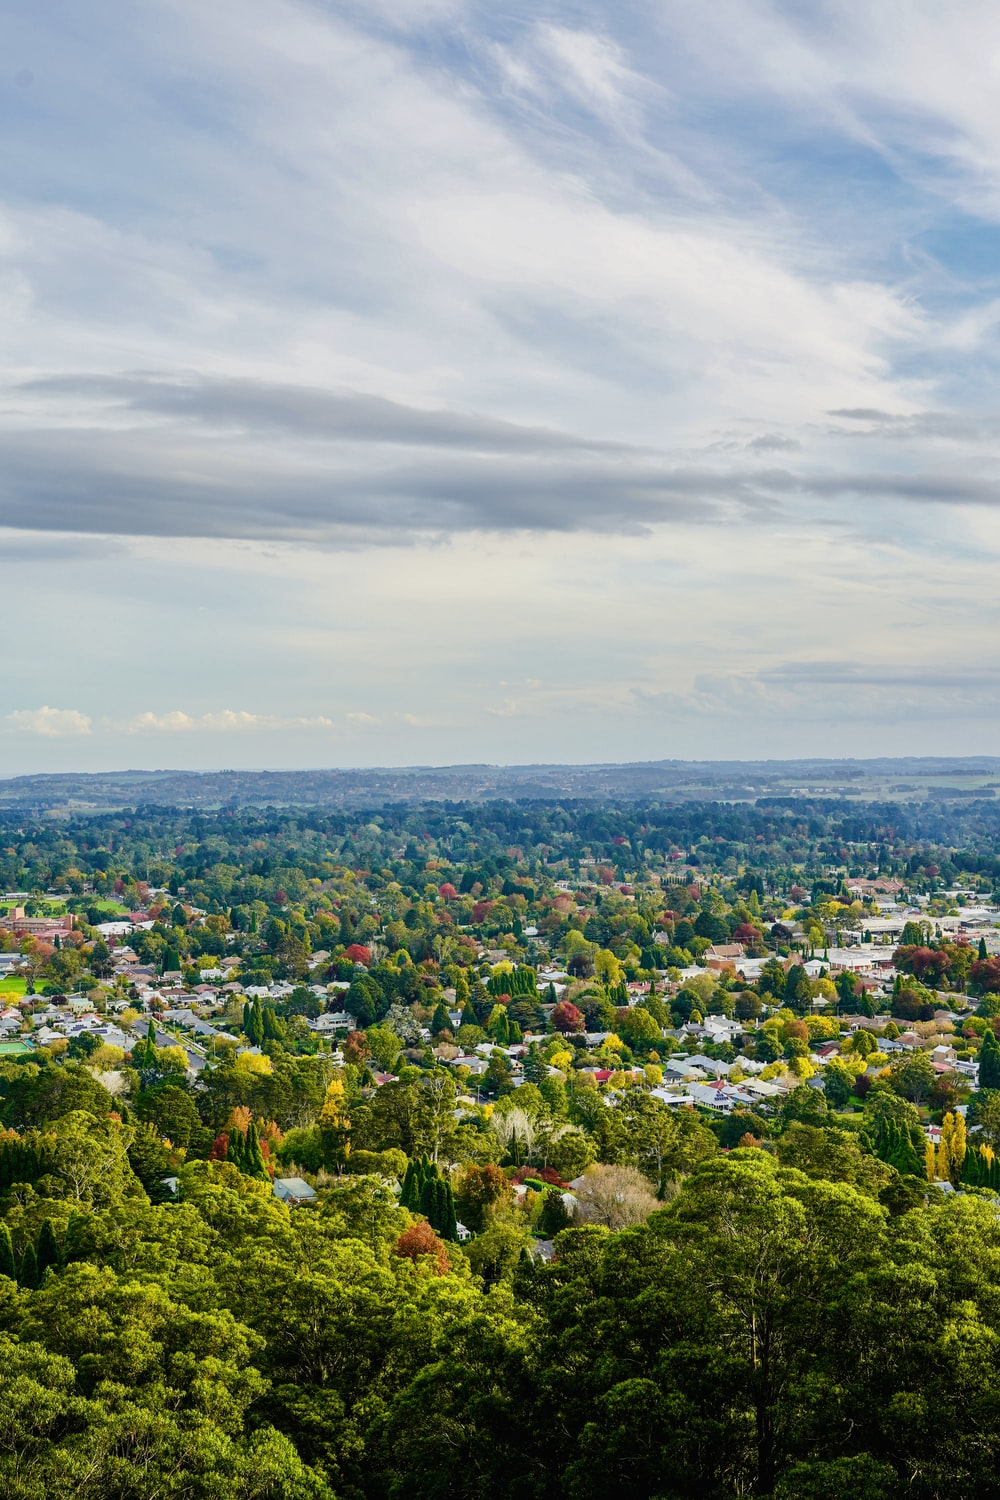 aerial photography of city surrounded by trees under cloudy sky during daytime